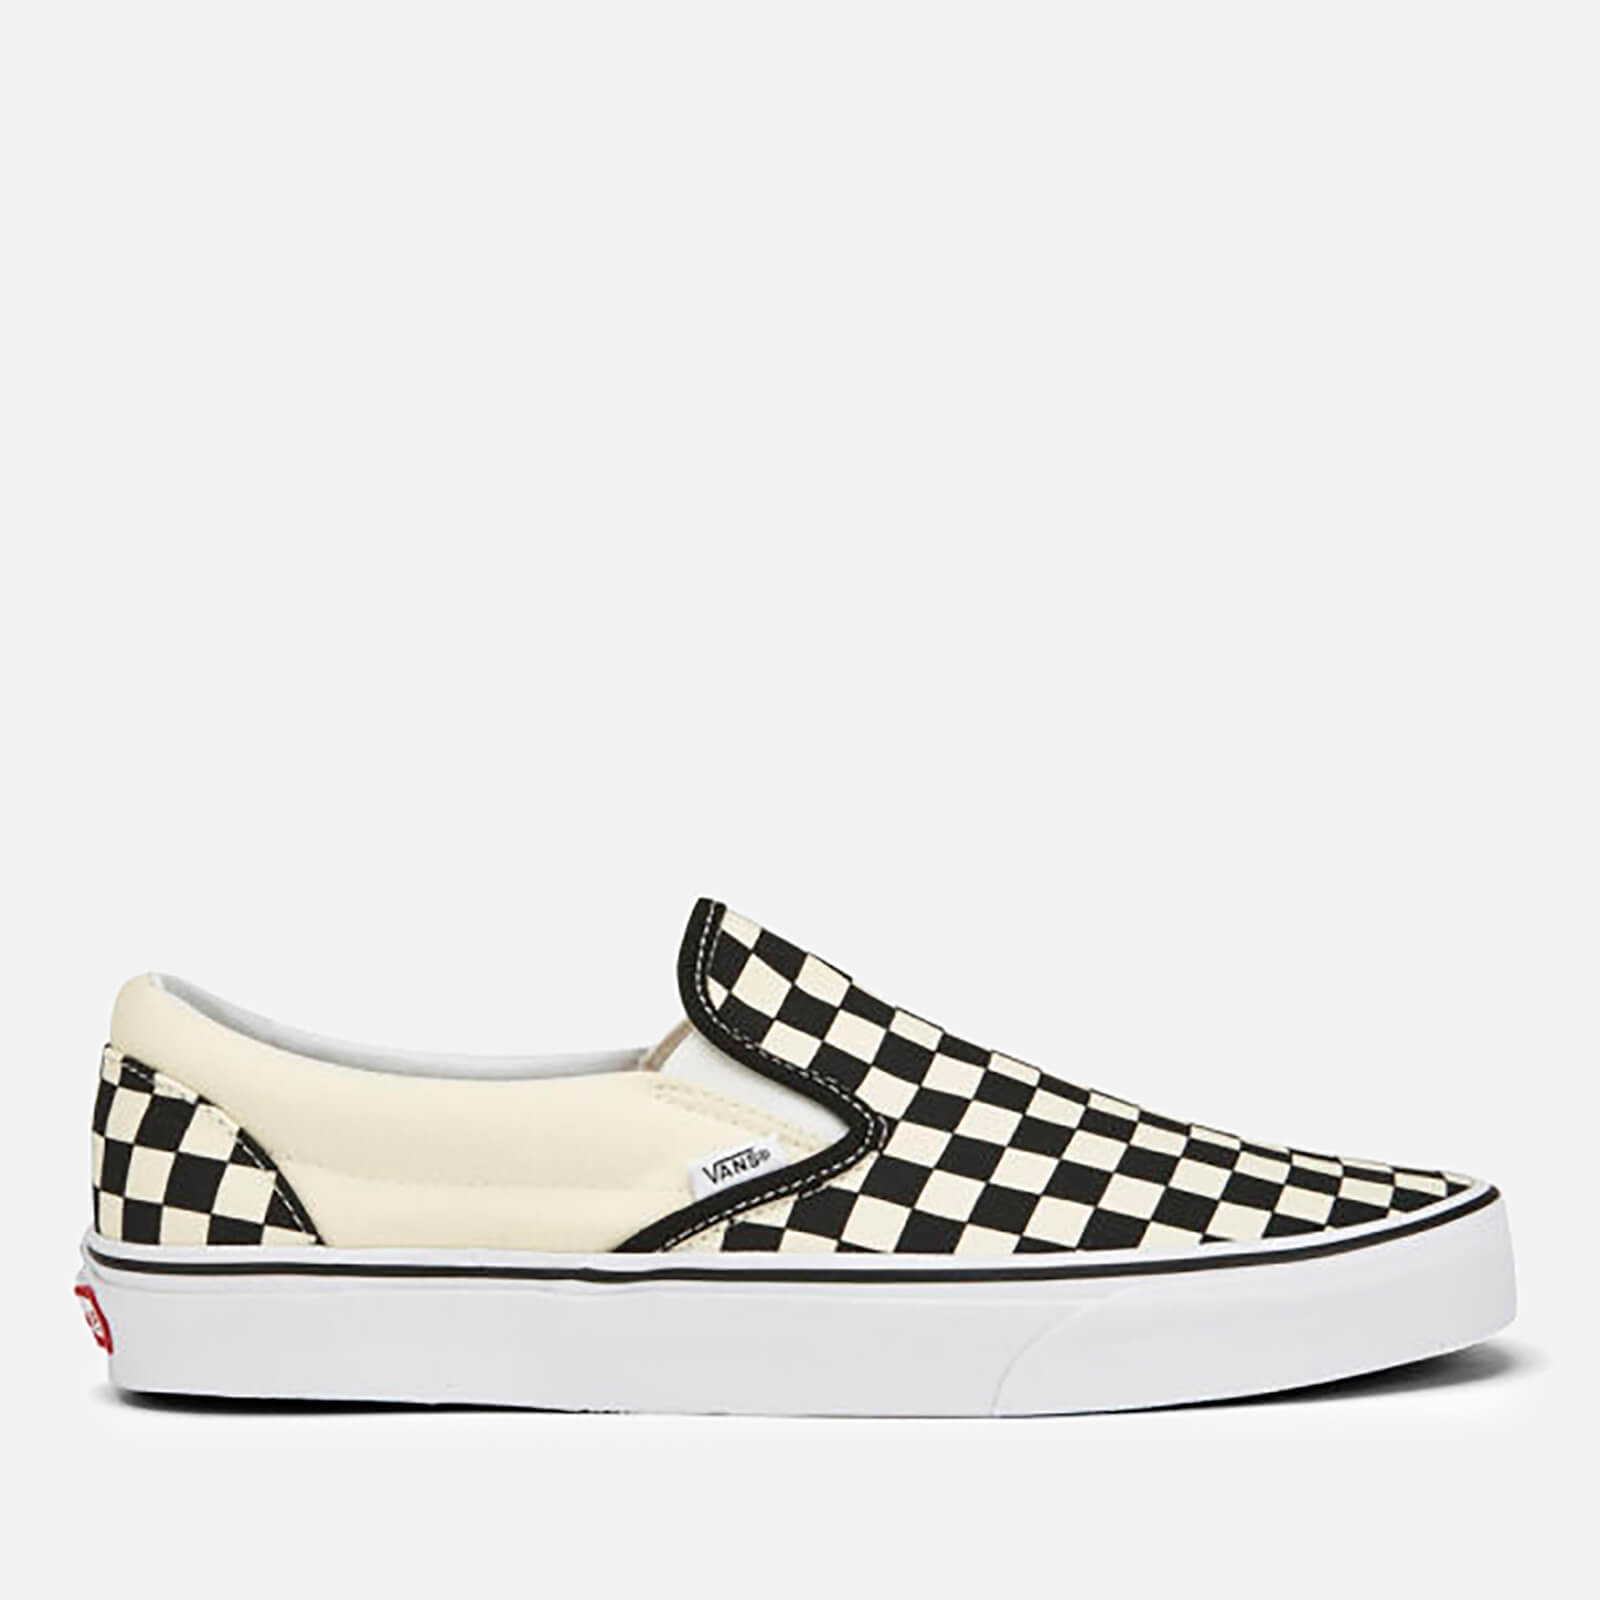 Vans Classic Slip On Trainers Black White Checkerboard Uk 10